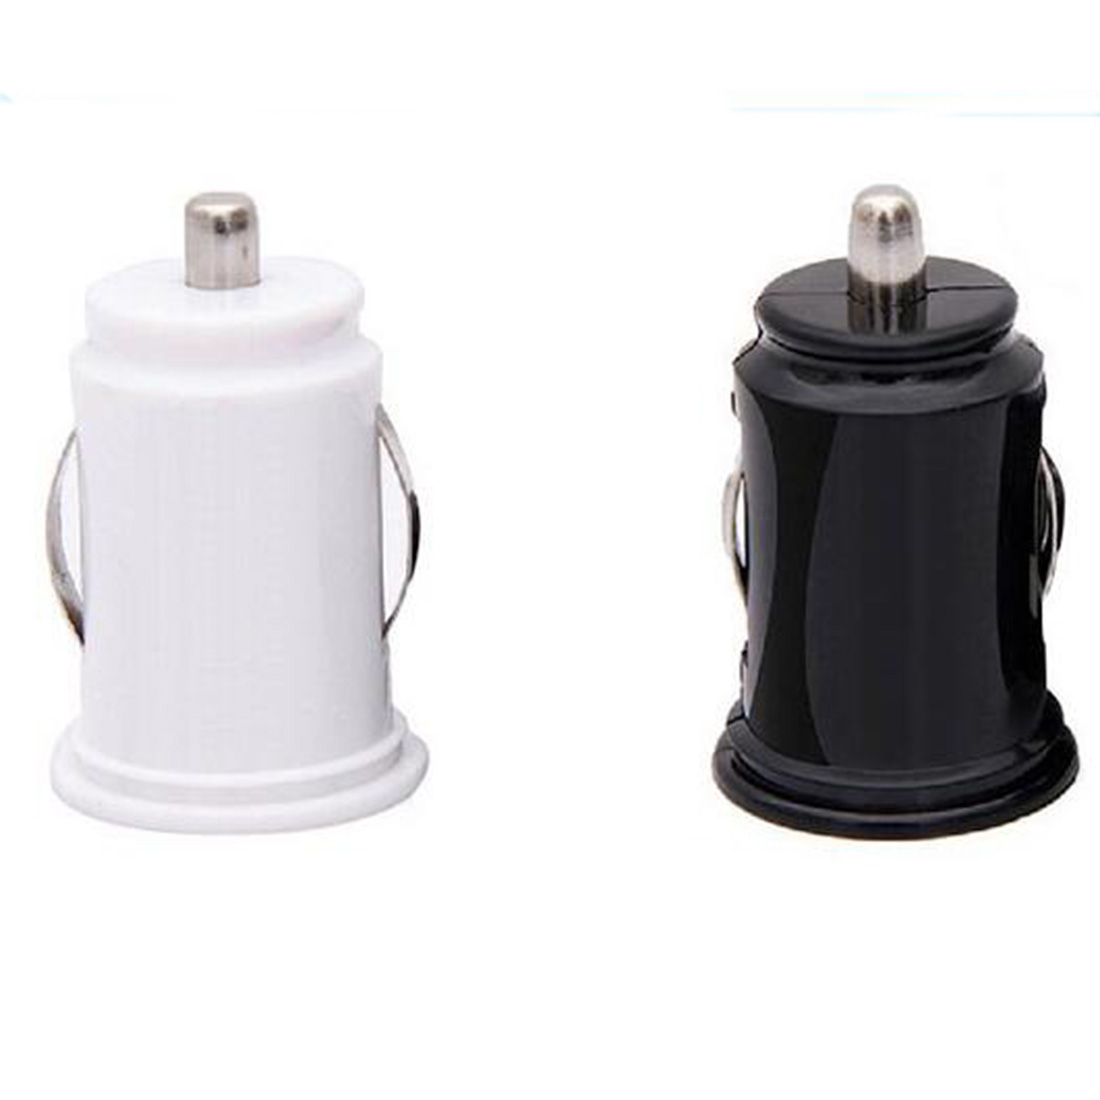 2.1A 5V Dual USB car charger 2 port Cigarette Lighter Adapter Charger USB Power Adapter For all smart phones Dewtreetali cigarette lighter 1 to 2 lighter adapter usb car charger micro usb cable black pink